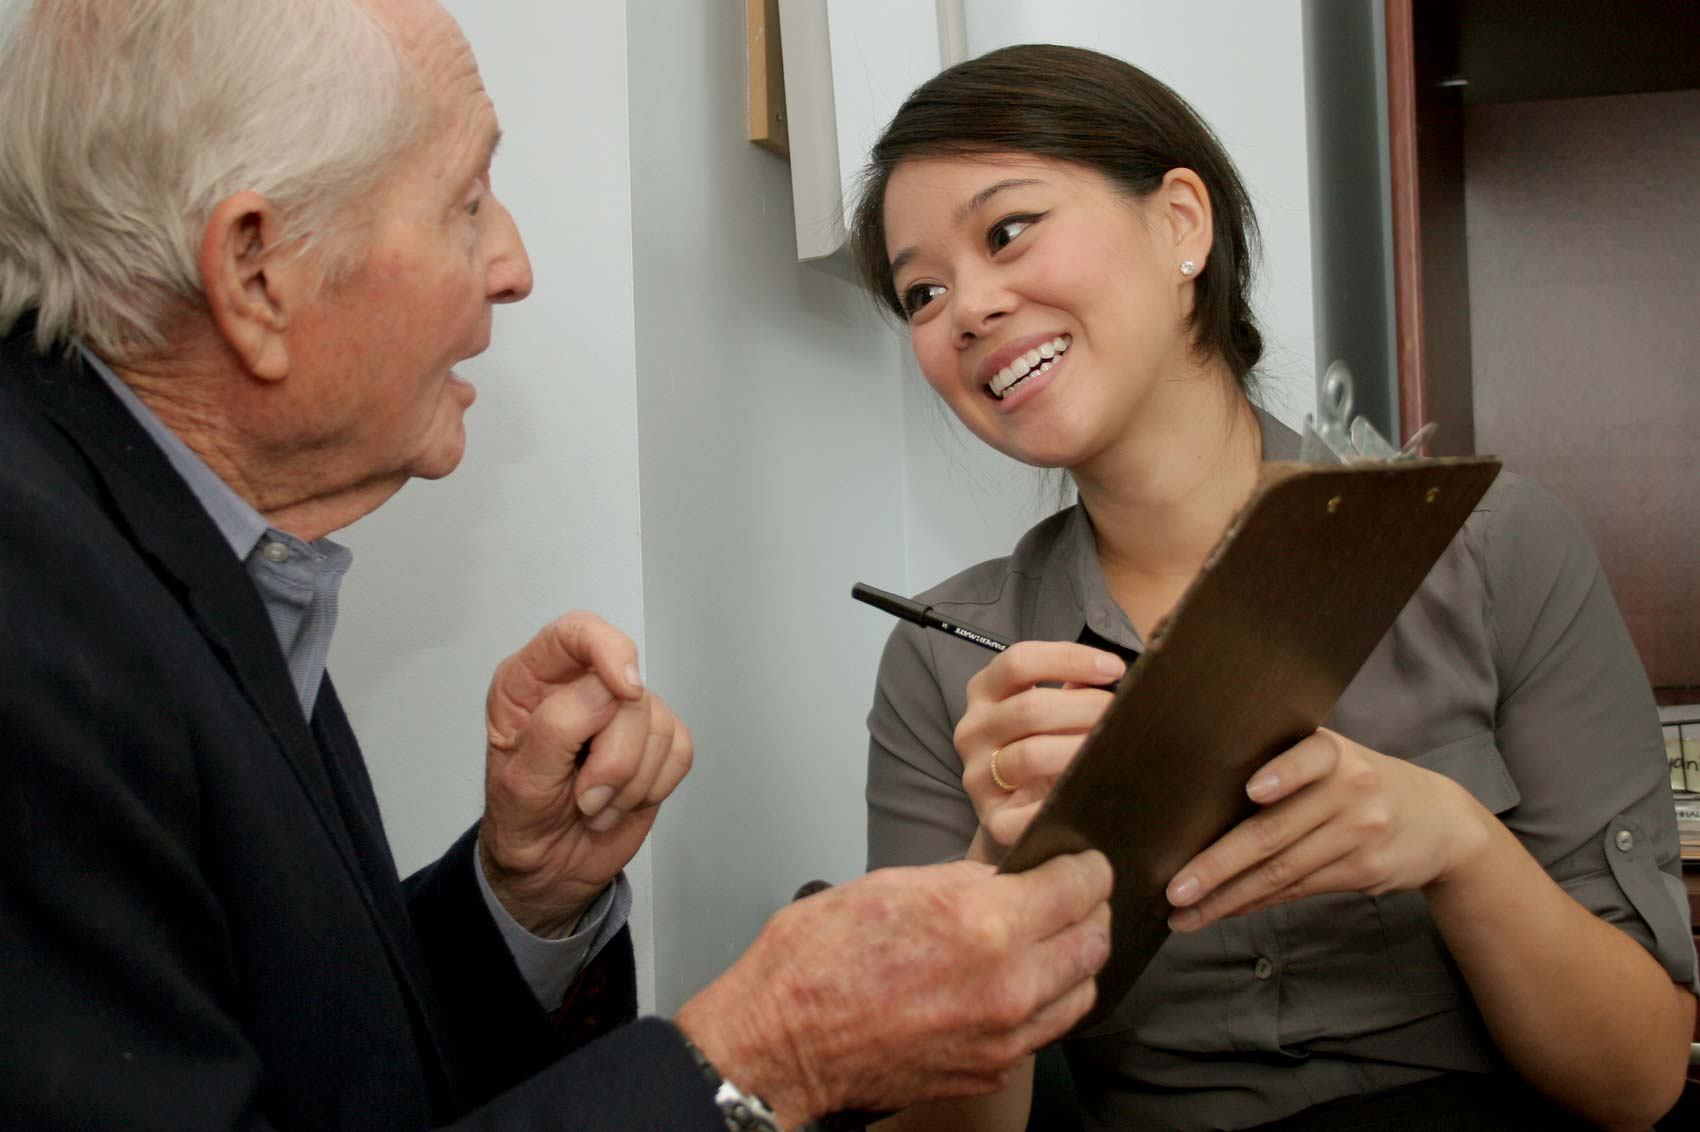 Female medical office staff member smiling while talking with patient